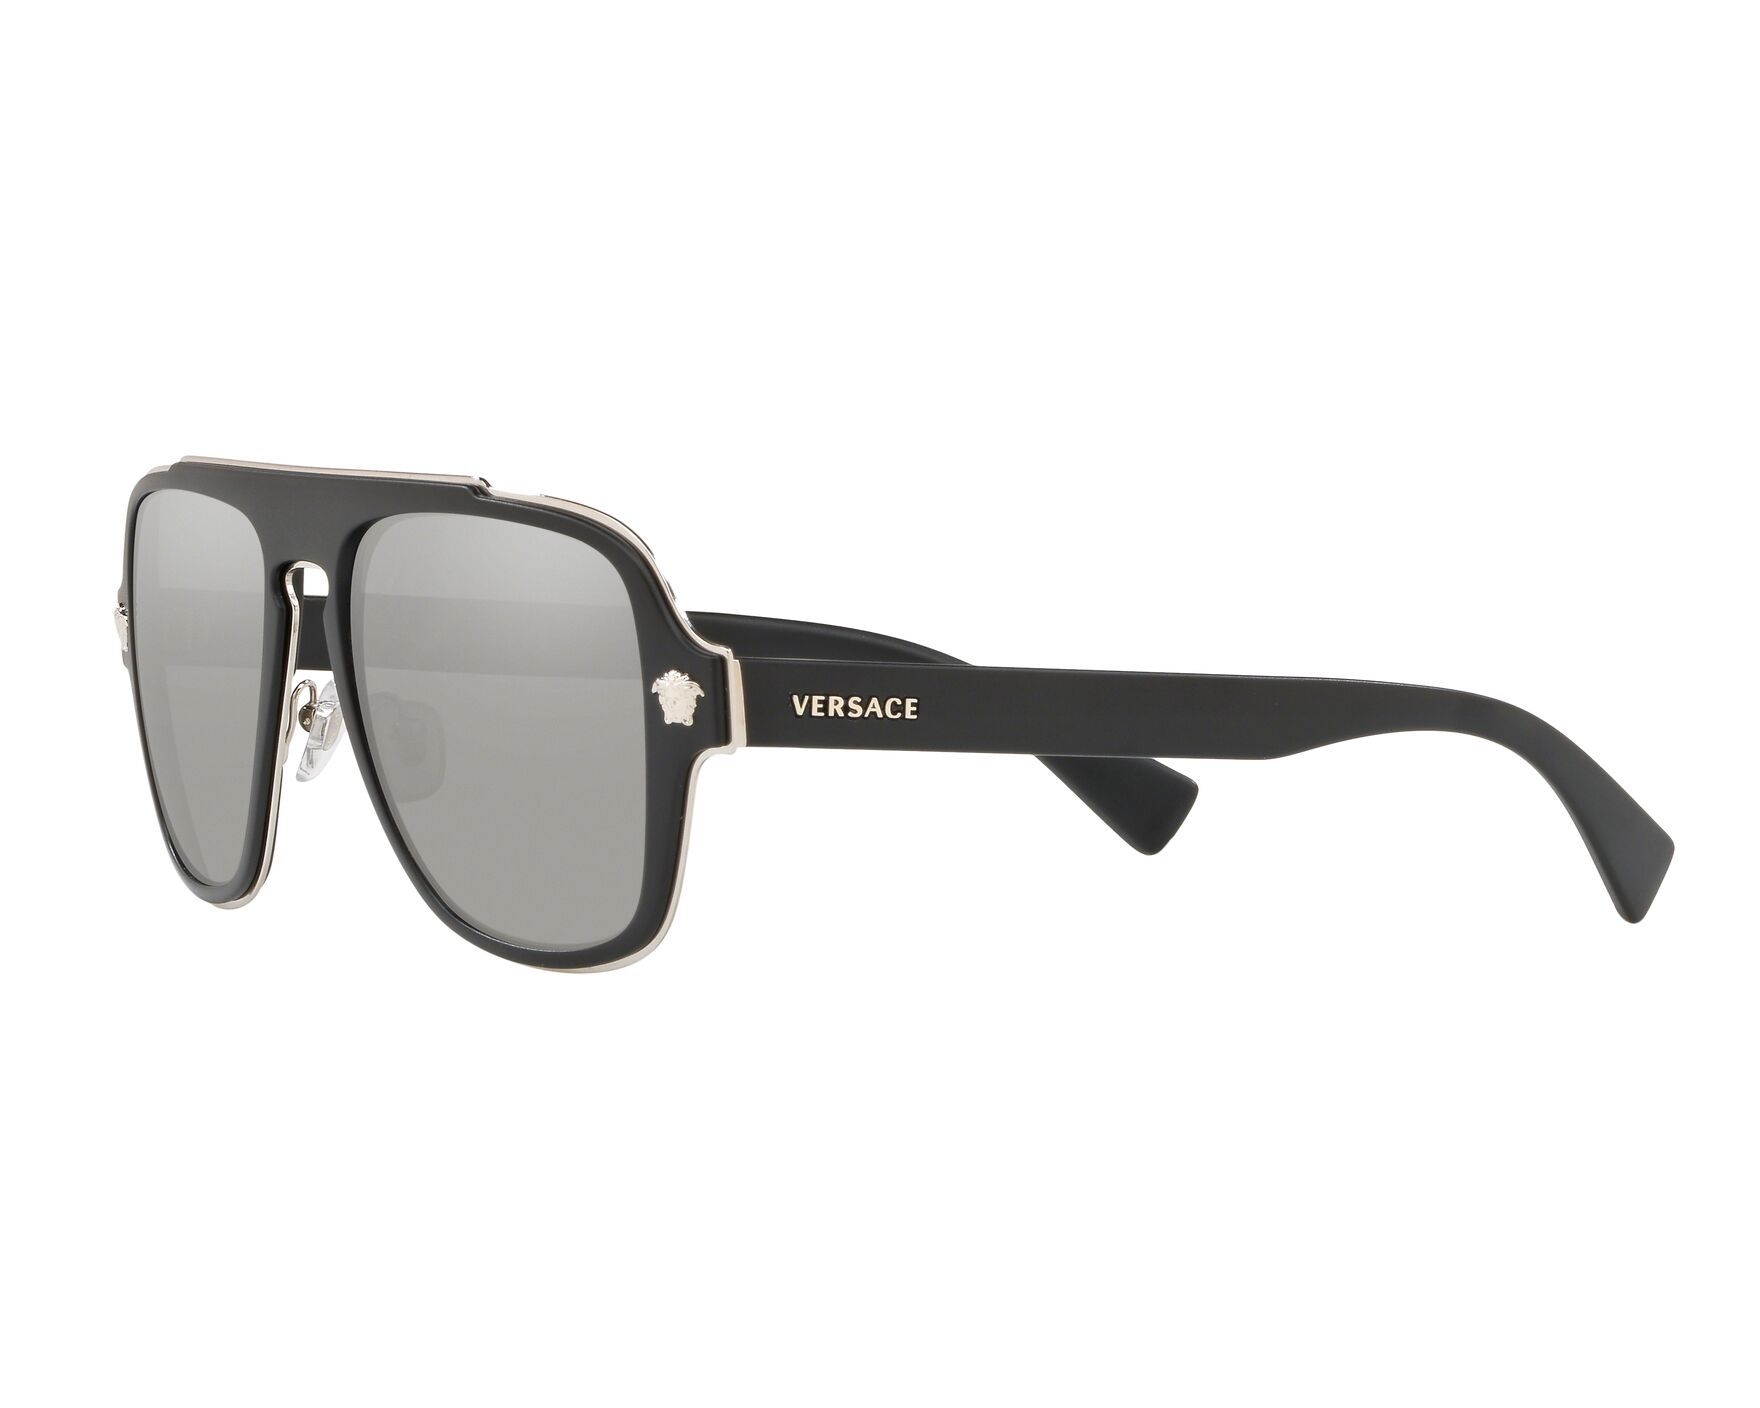 921a13fe5421 Sunglasses Versace VE-2199 10006G 57-18 Black Silver 360 degree view 3